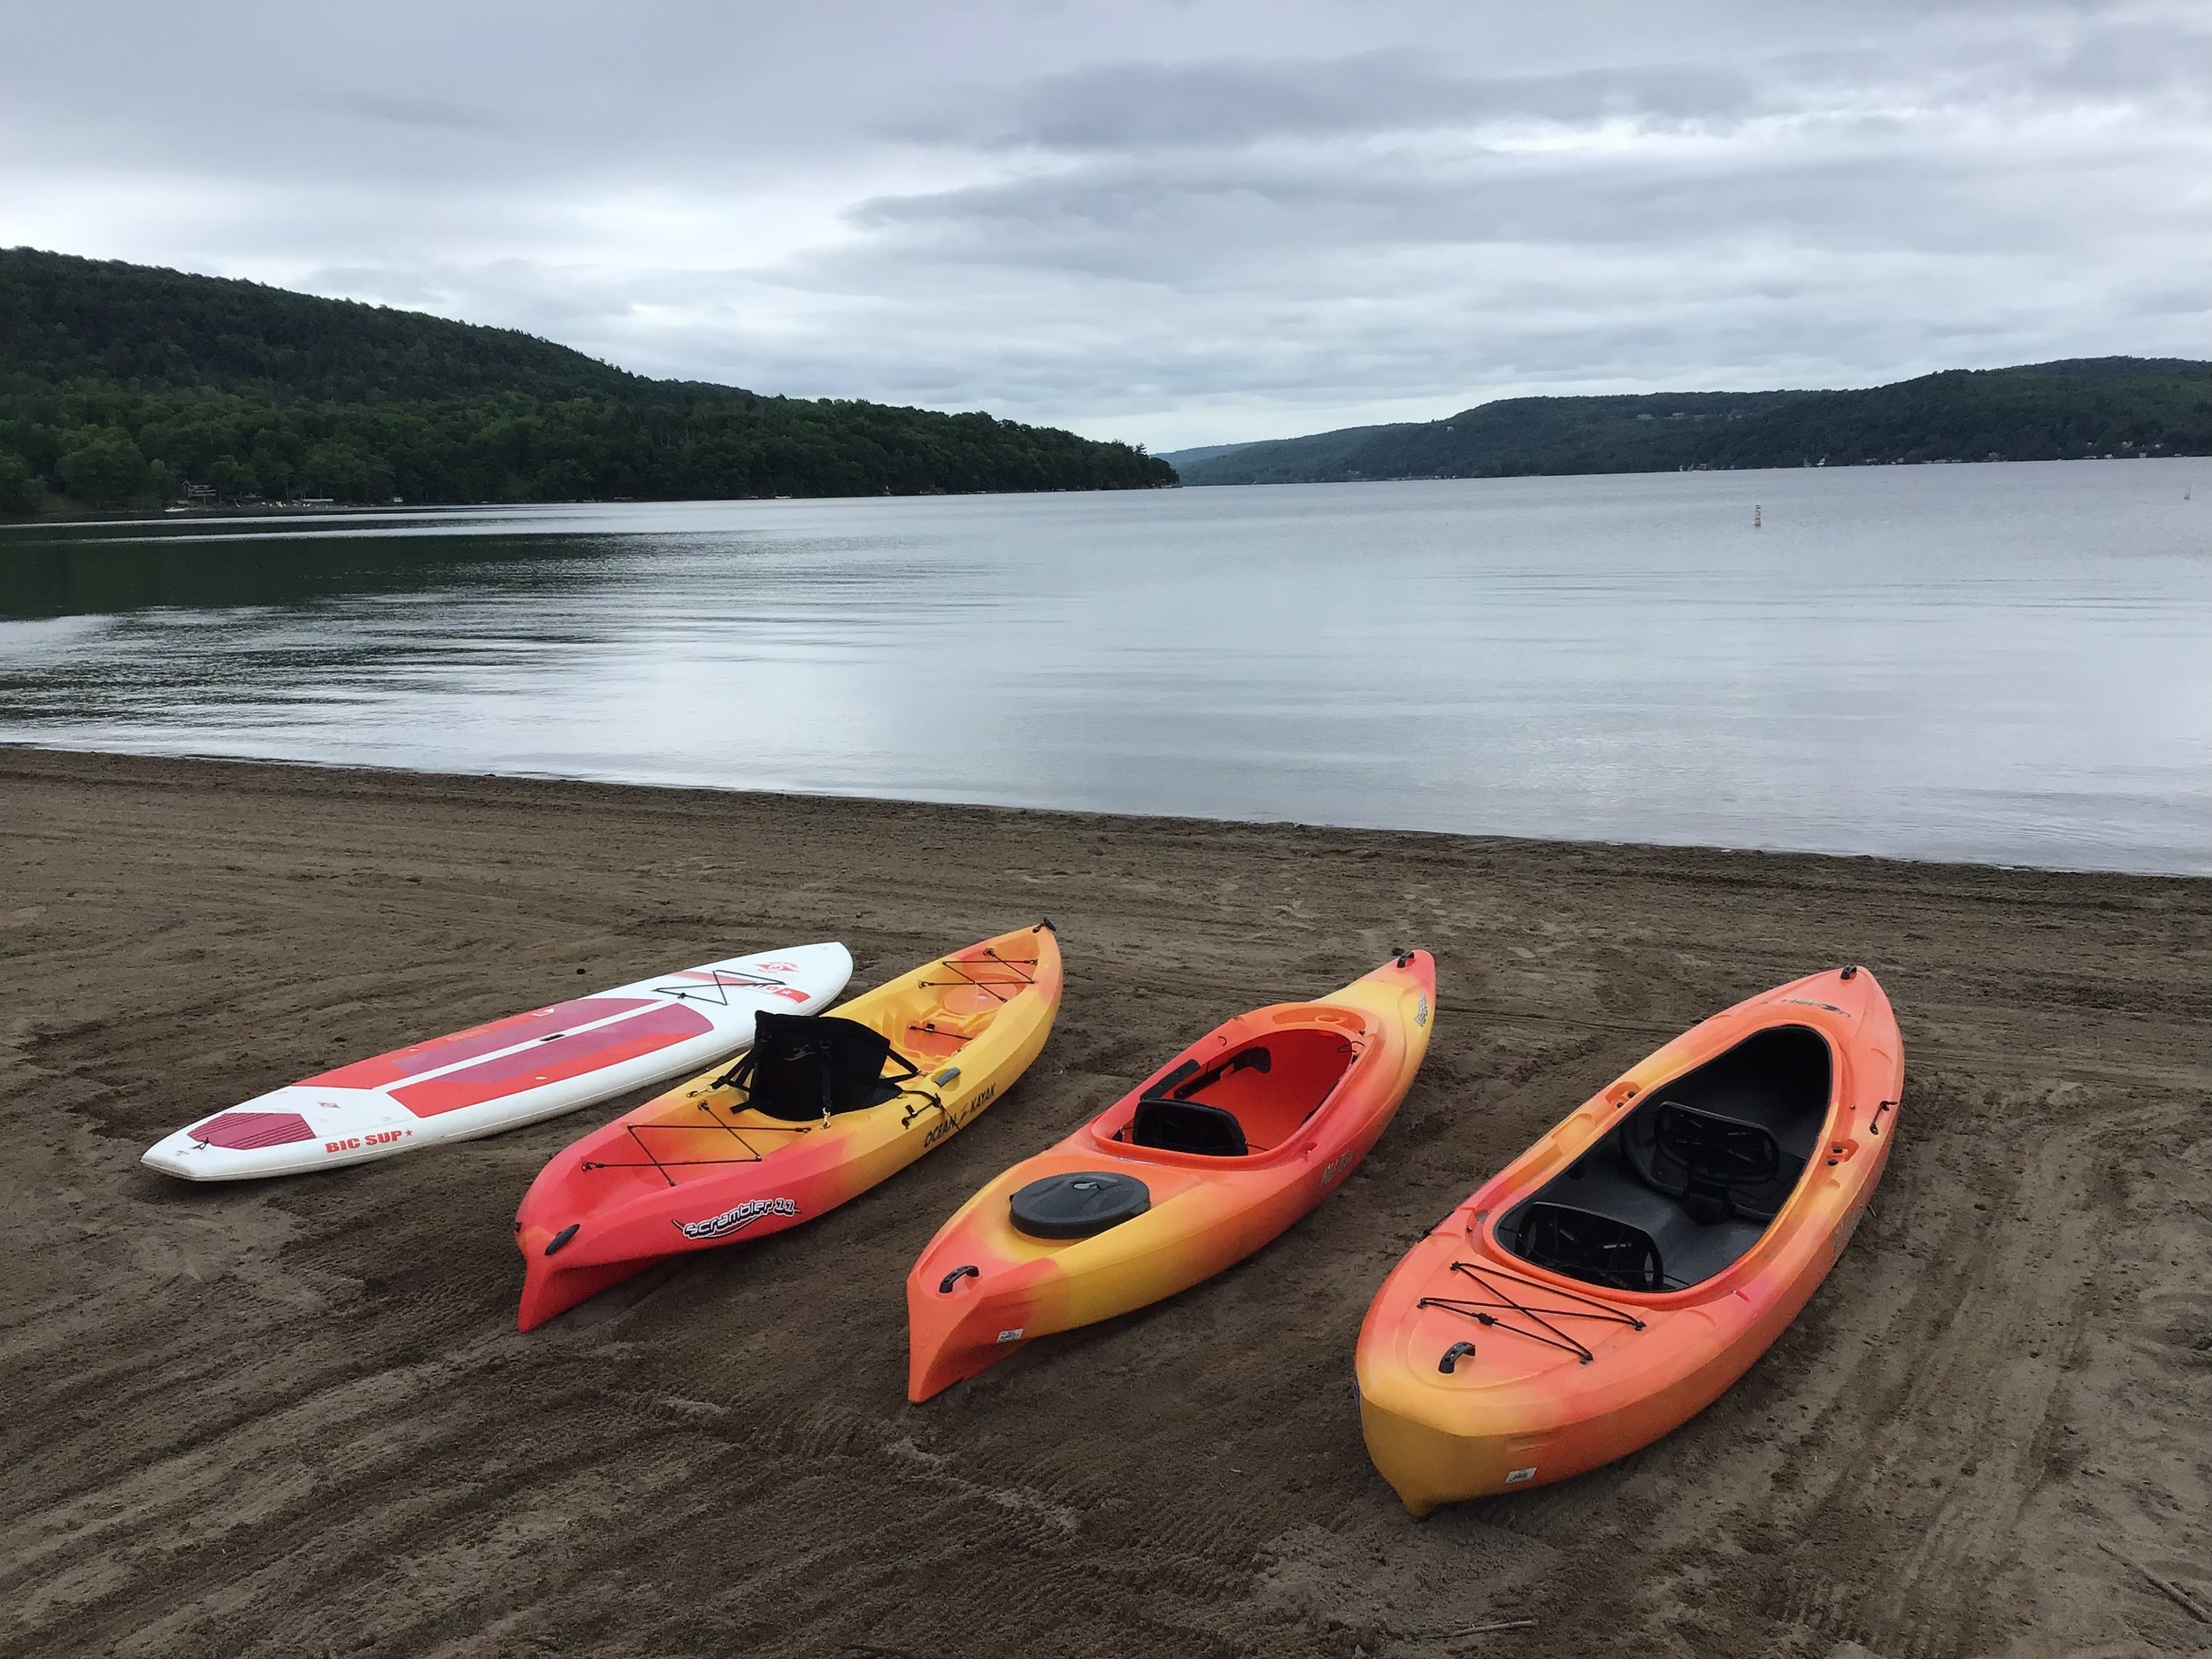 Copy of Glimmerglass State Park - Cooperstown